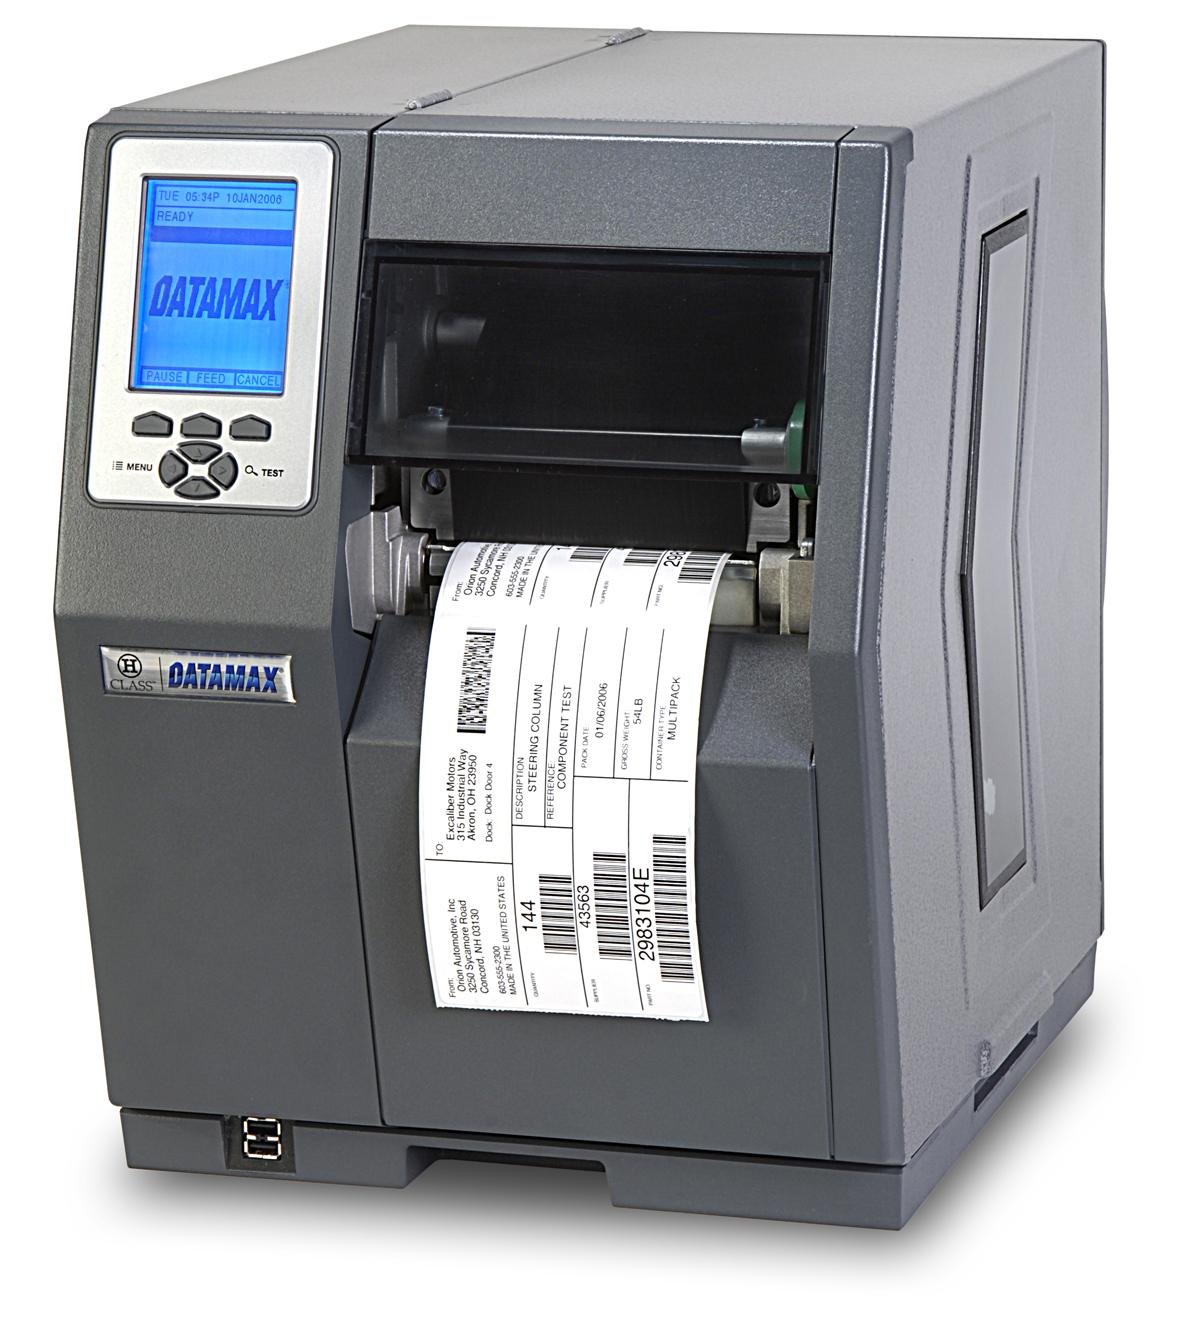 We buy Datamax thermal barcode label printers